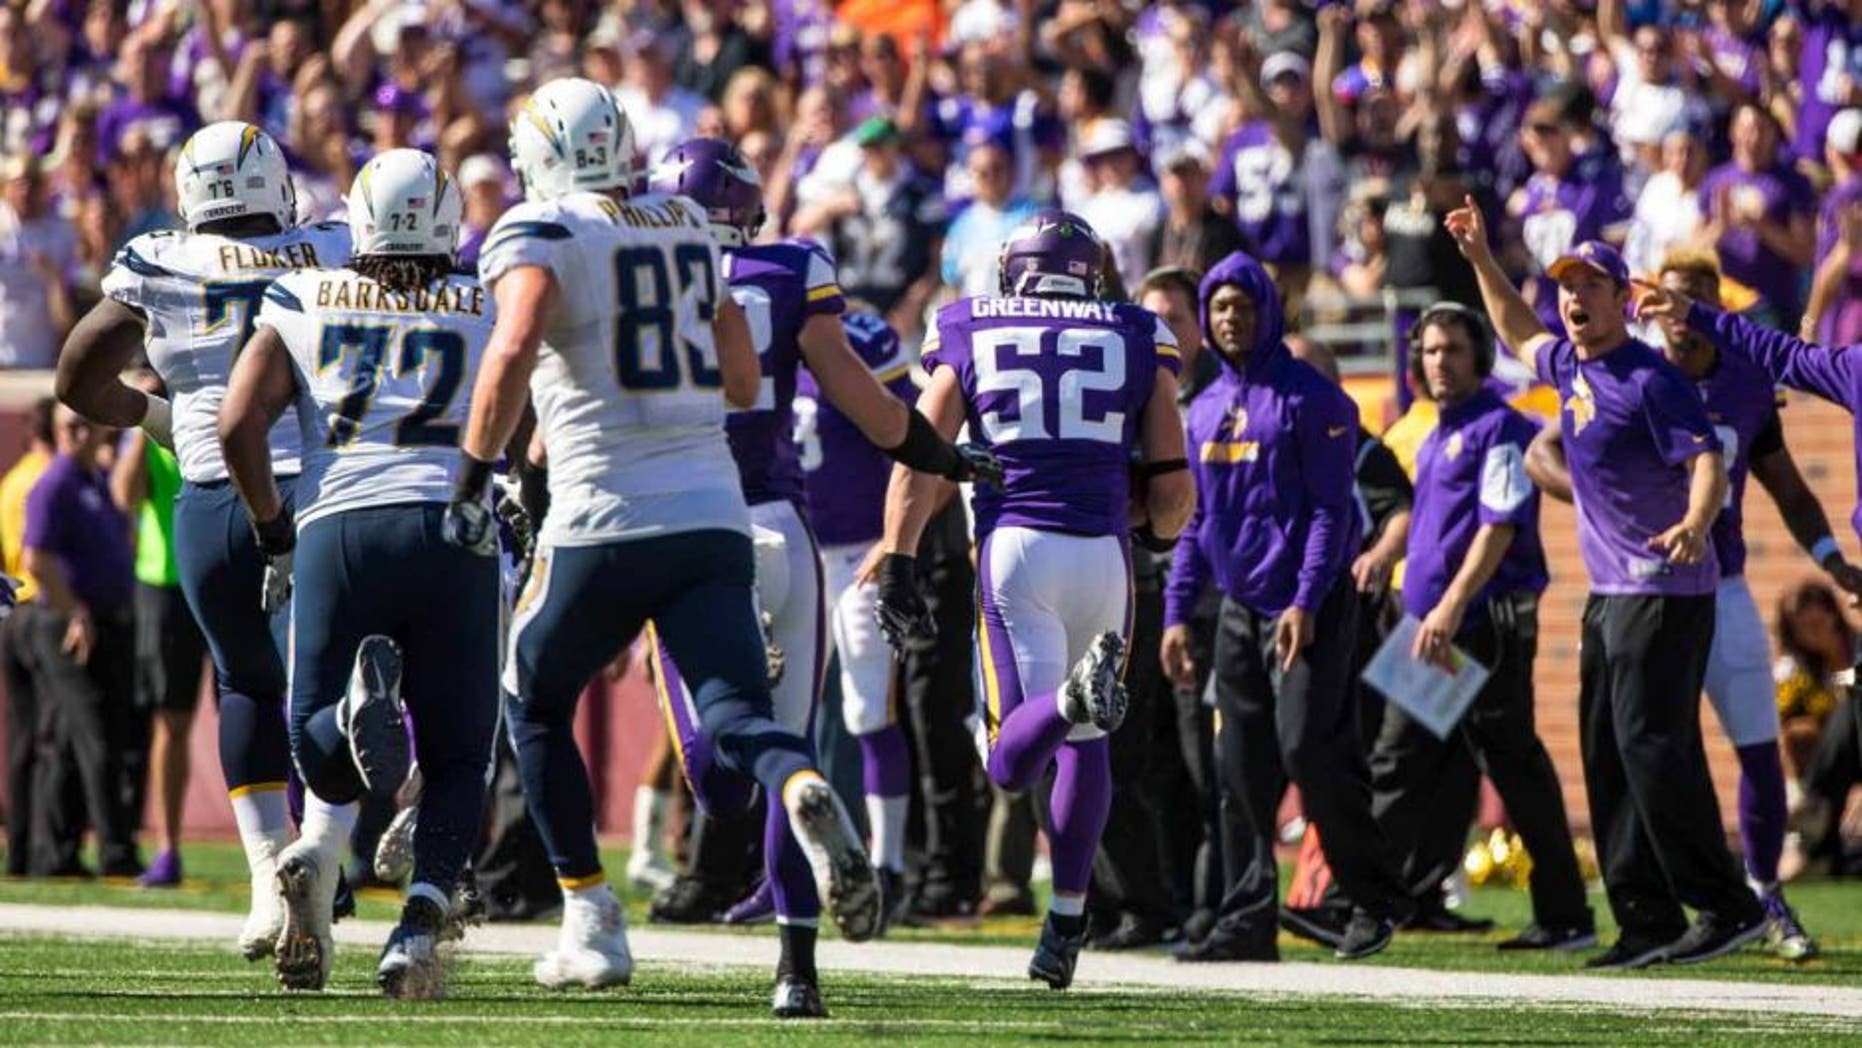 Minnesota Vikings linebacker Chad Greenway returns an interception for a touchdown during the fourth quarter against the San Diego Chargers at TCF Bank Stadium in Minneapolis on Sunday, Sept. 27, 2015. The Vikings defeated the Chargers 31-14.